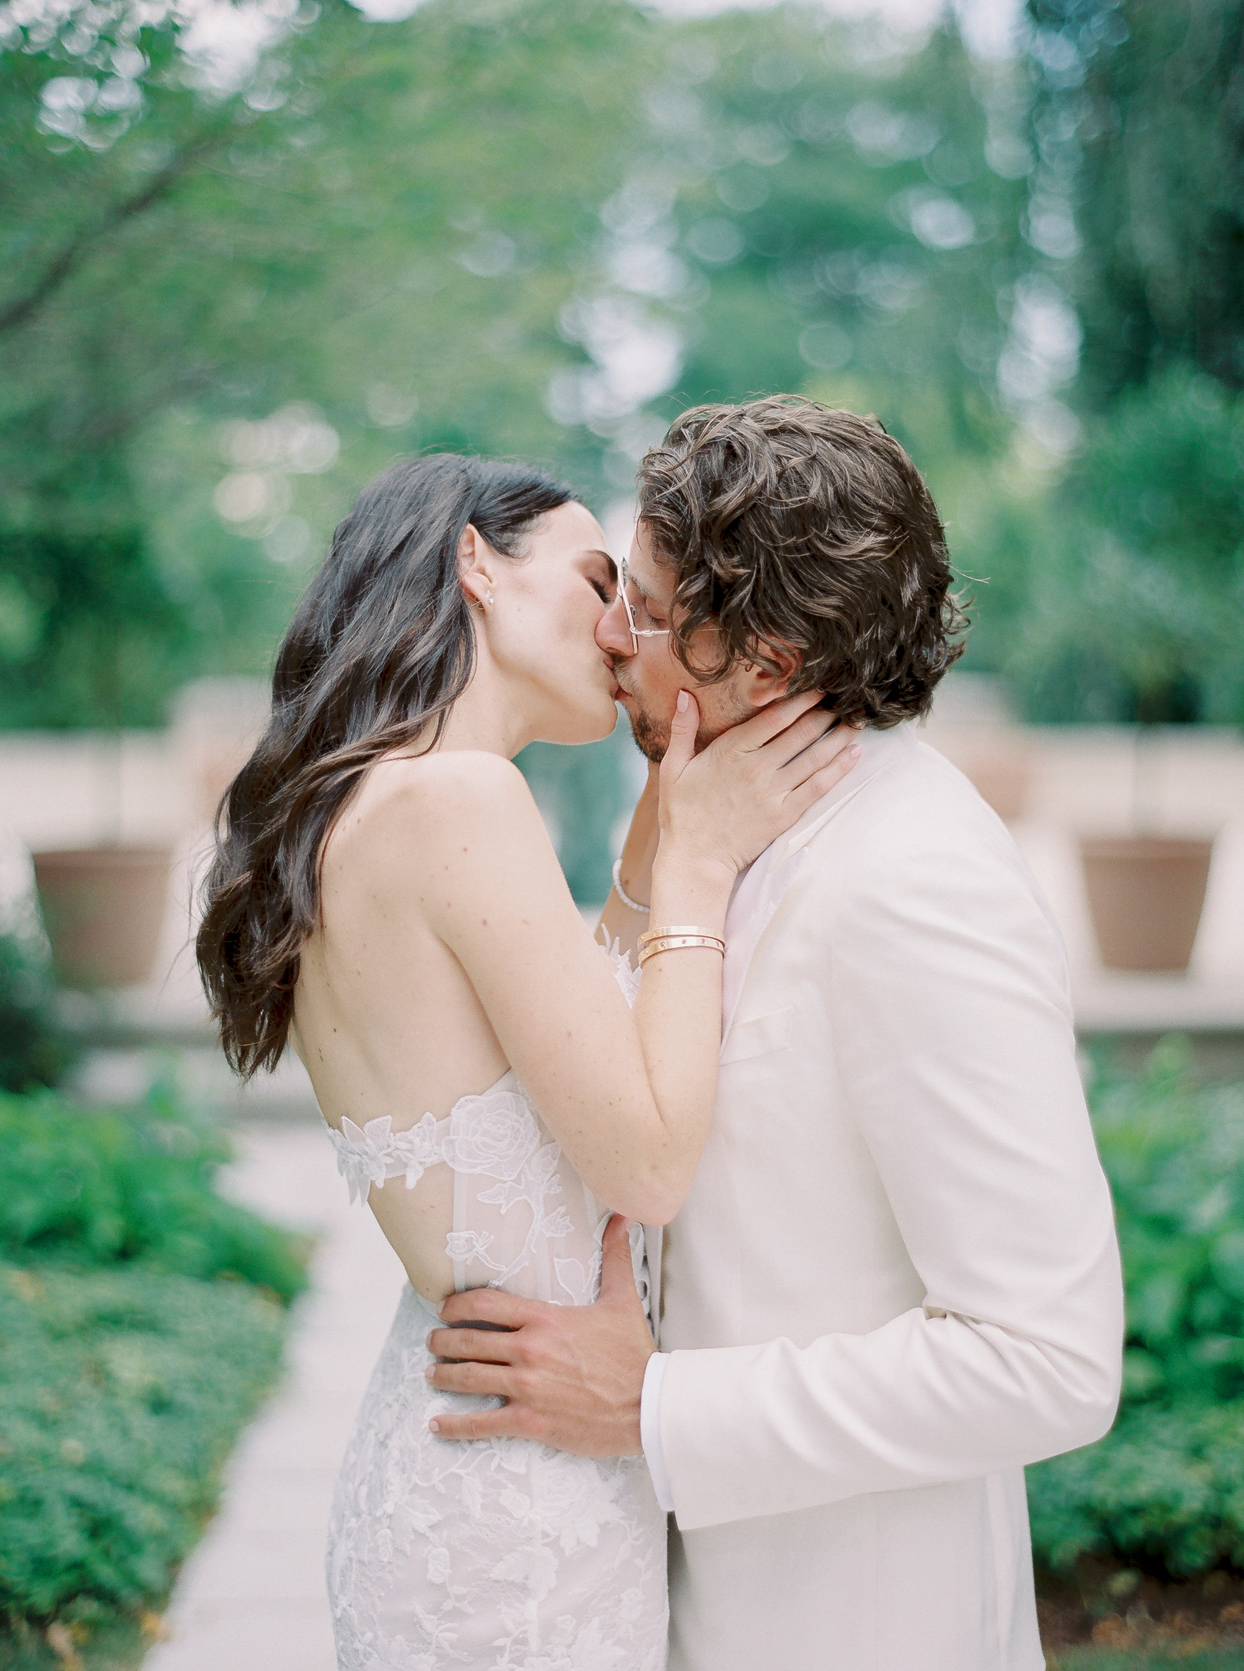 bride and groom embracing and kissing